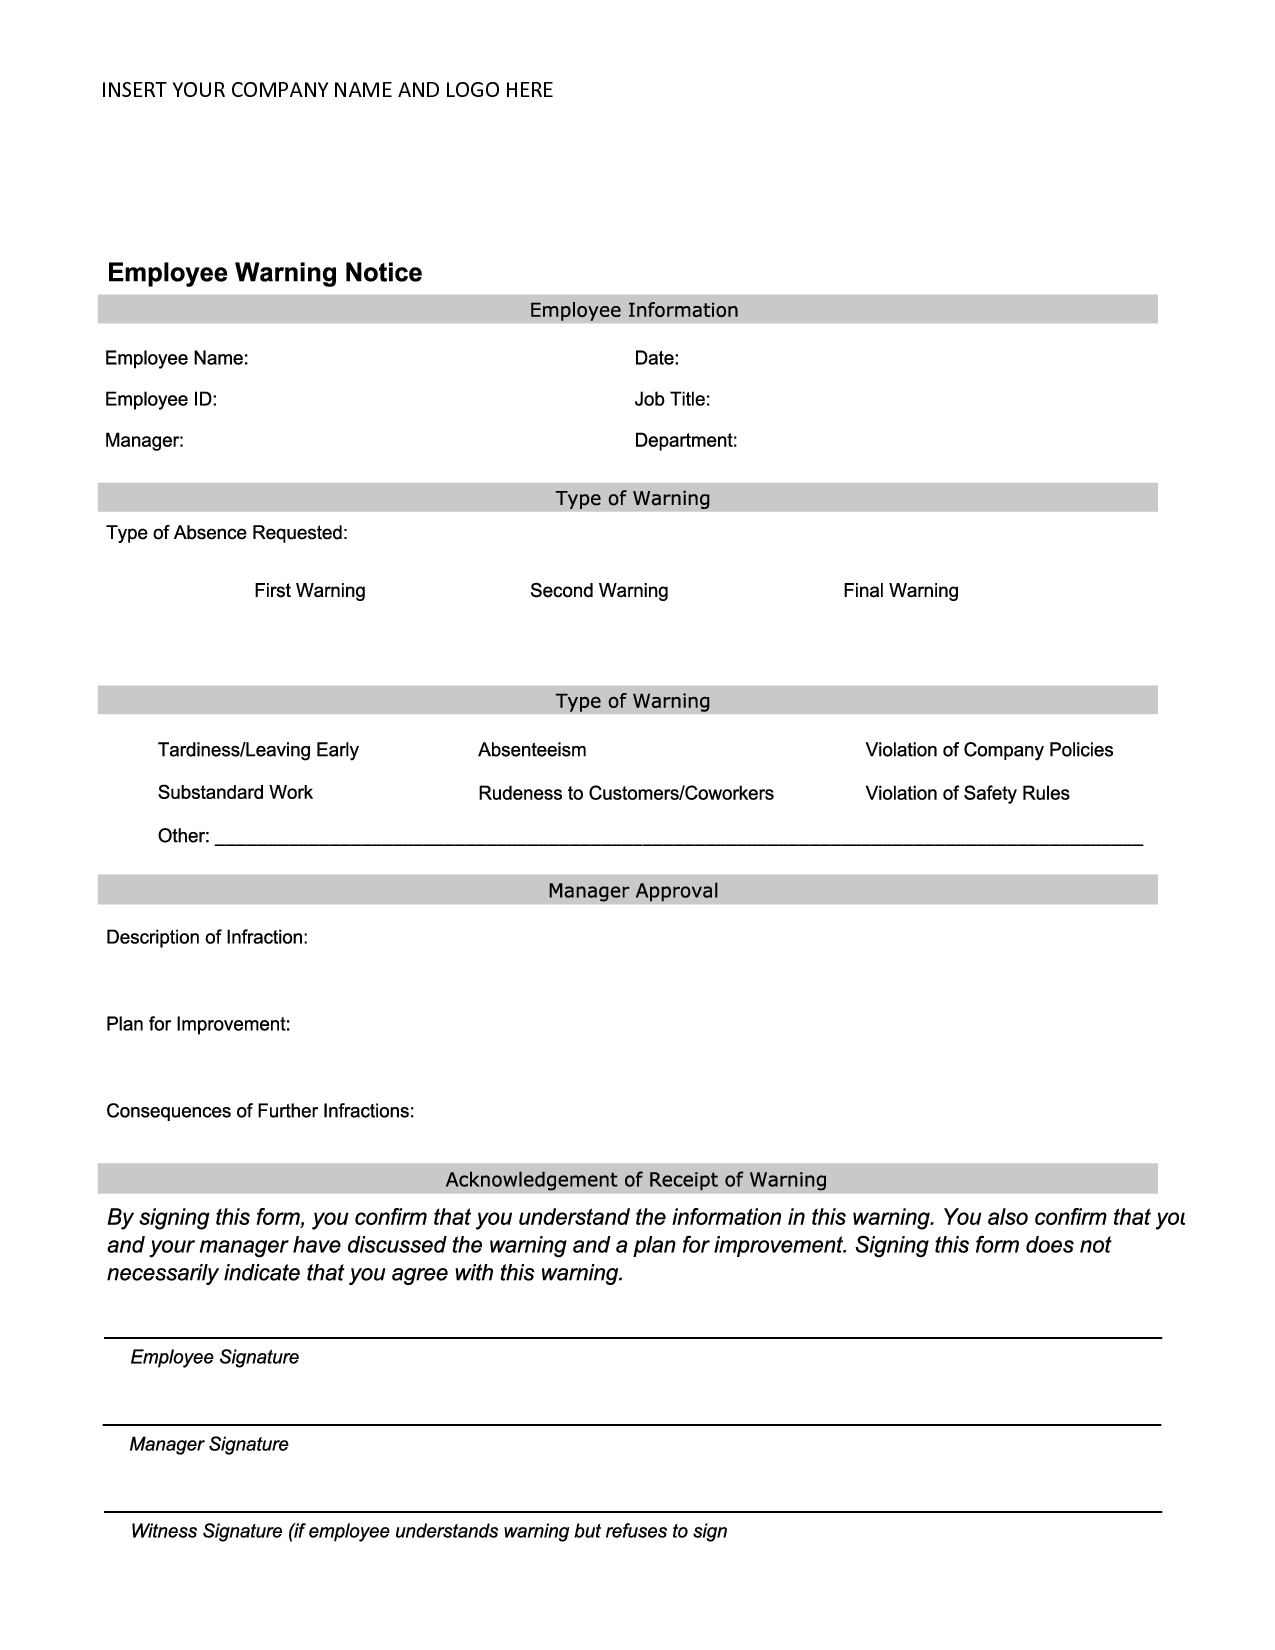 Essentials of an Employee Warning Letter